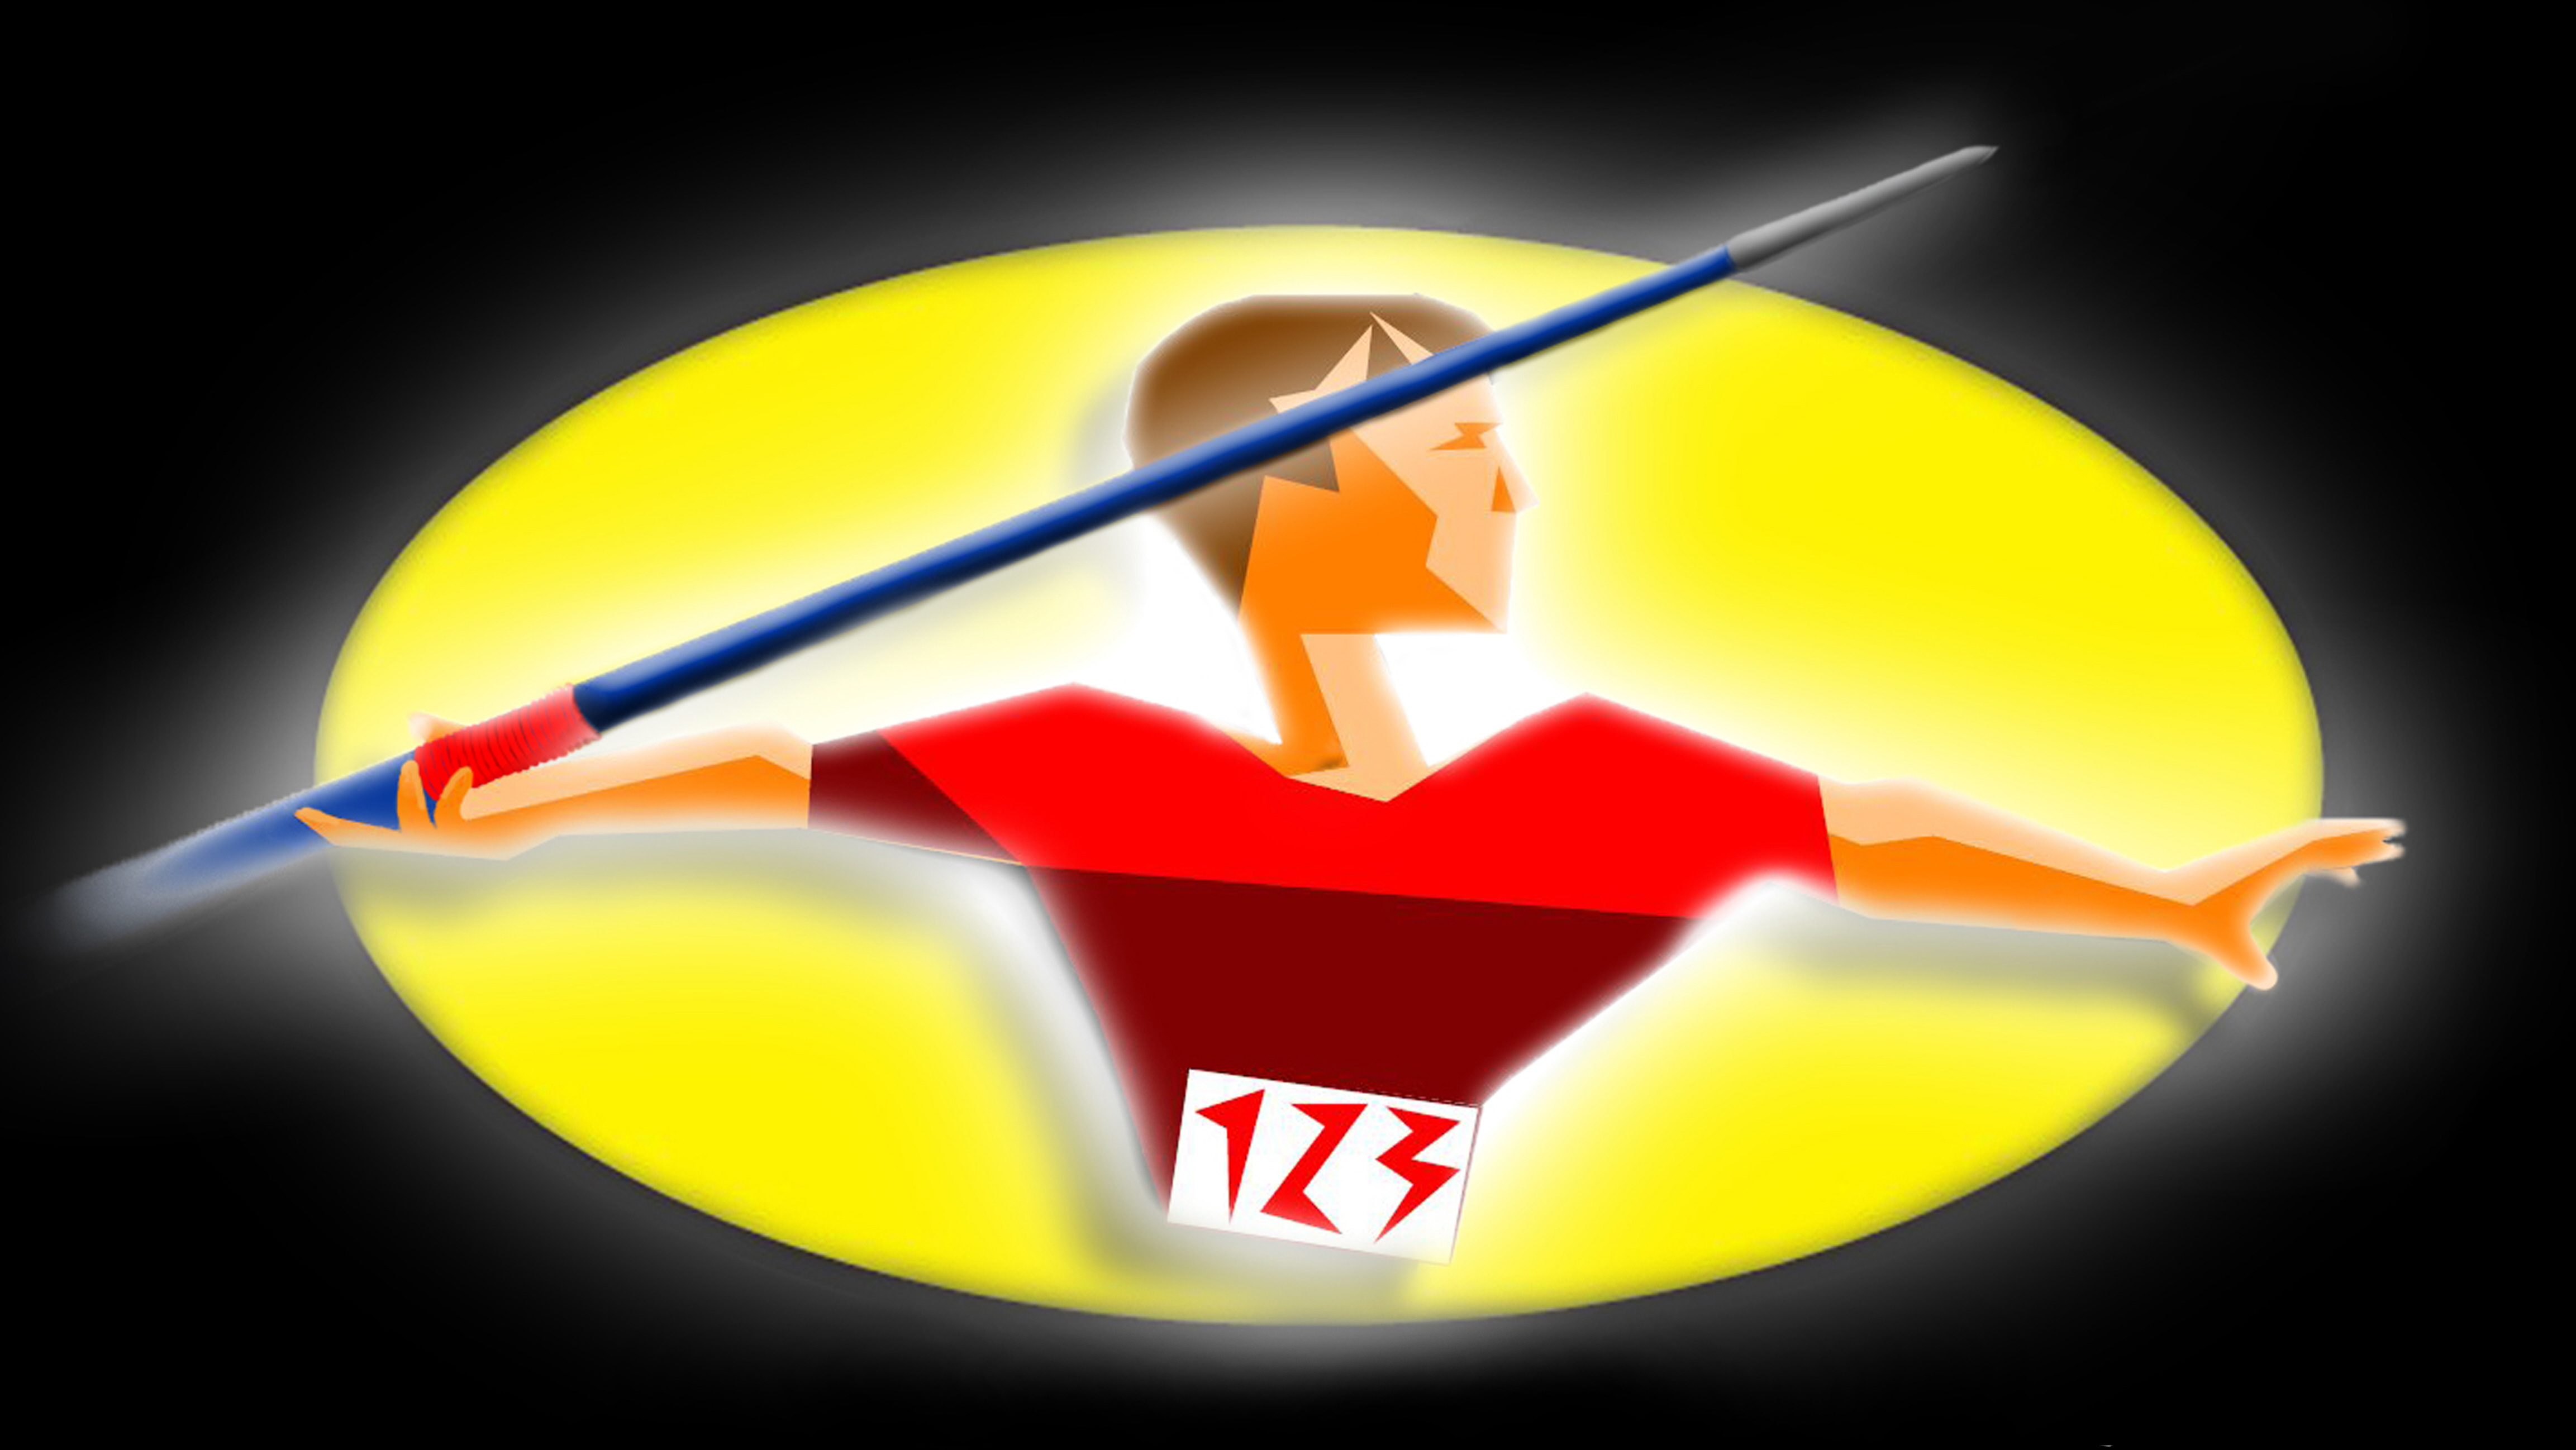 THE JAVELIN MAN